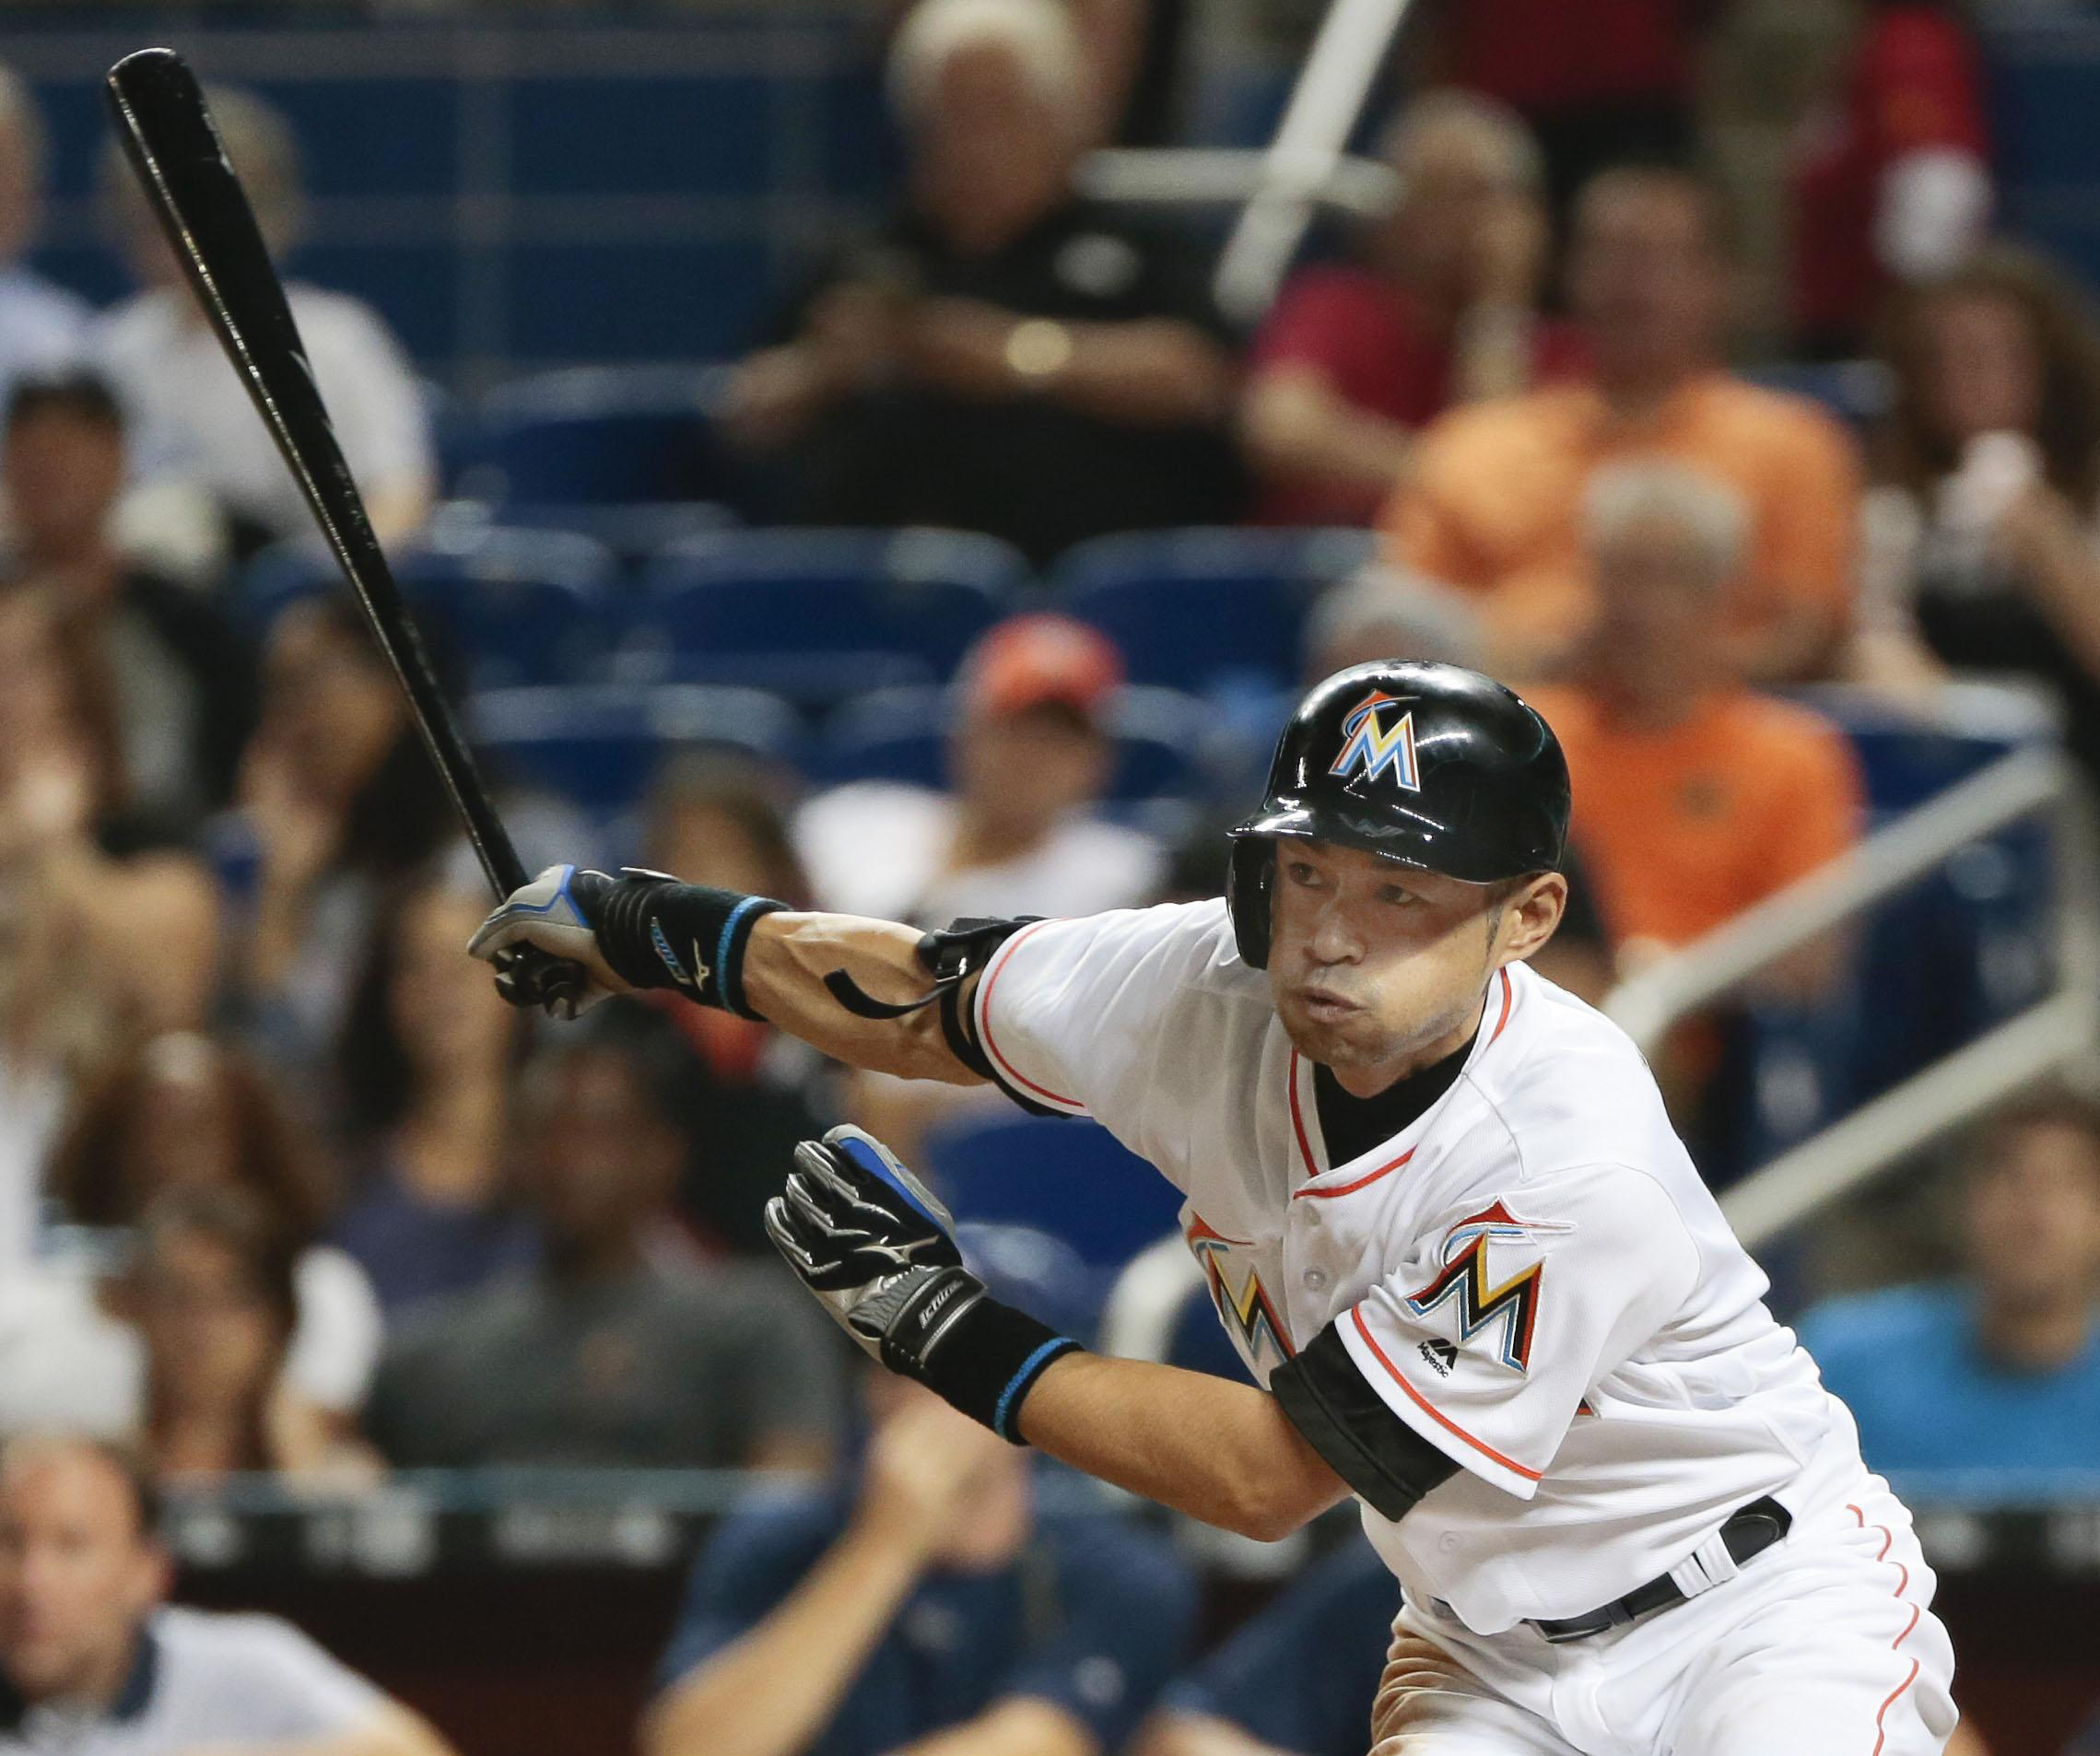 Ichiro turns back clock to lift Marlins | The Japan Times